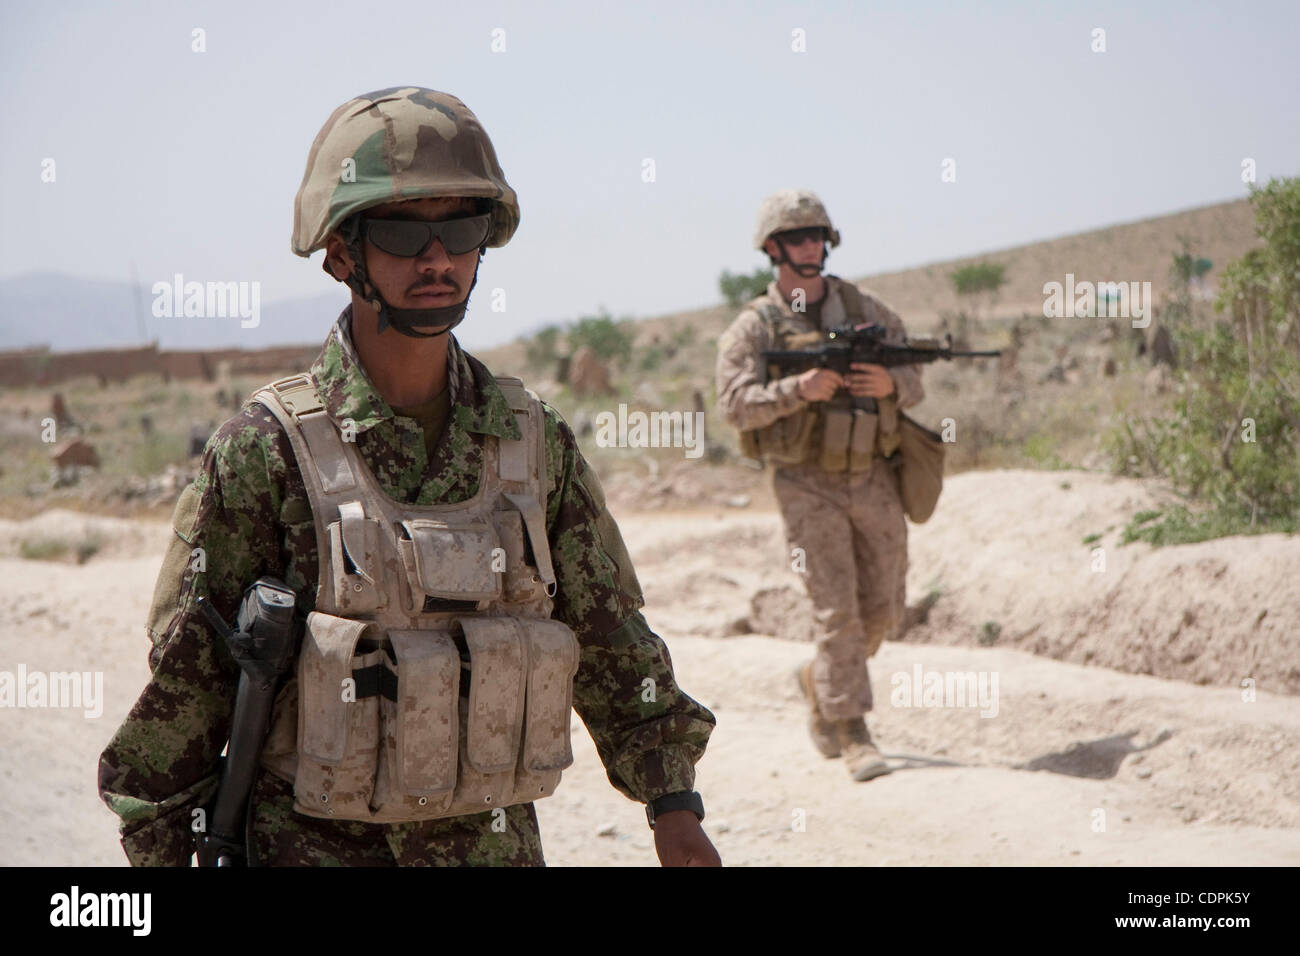 Apr 27, 2011 - Town of Naw Zad, Naw Zad district, Helmand, Afghanistan - An ANA soldier from 4th Company, 3rd Kandak, Stock Photo